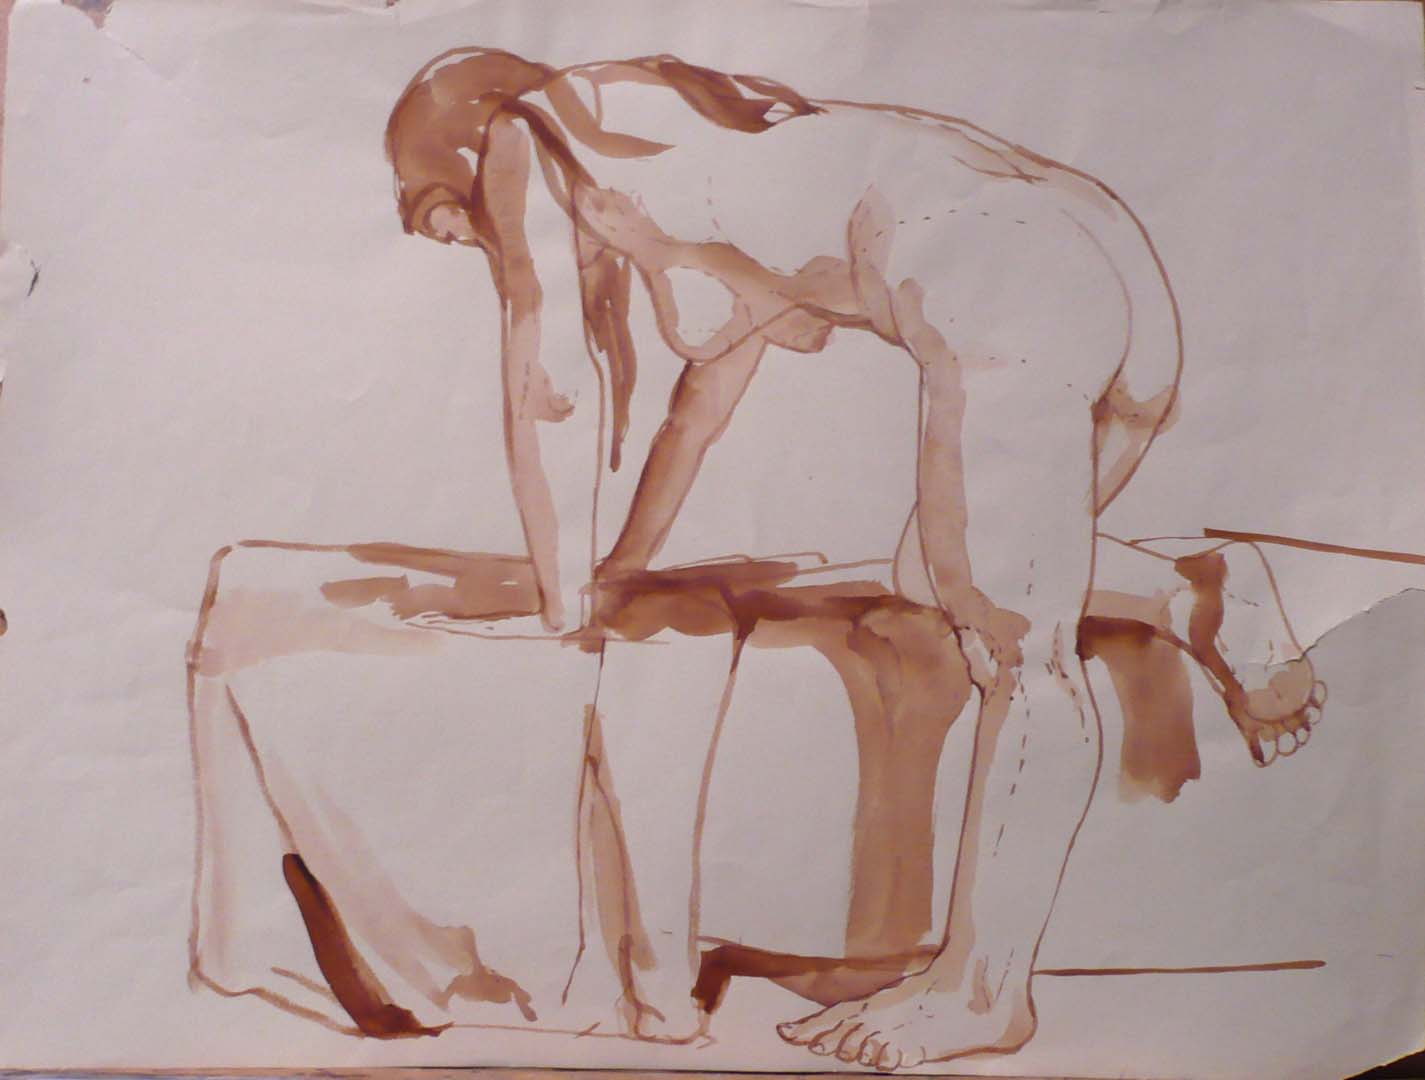 Female Model Leaning Forward Sepia 16.25 x 21.625